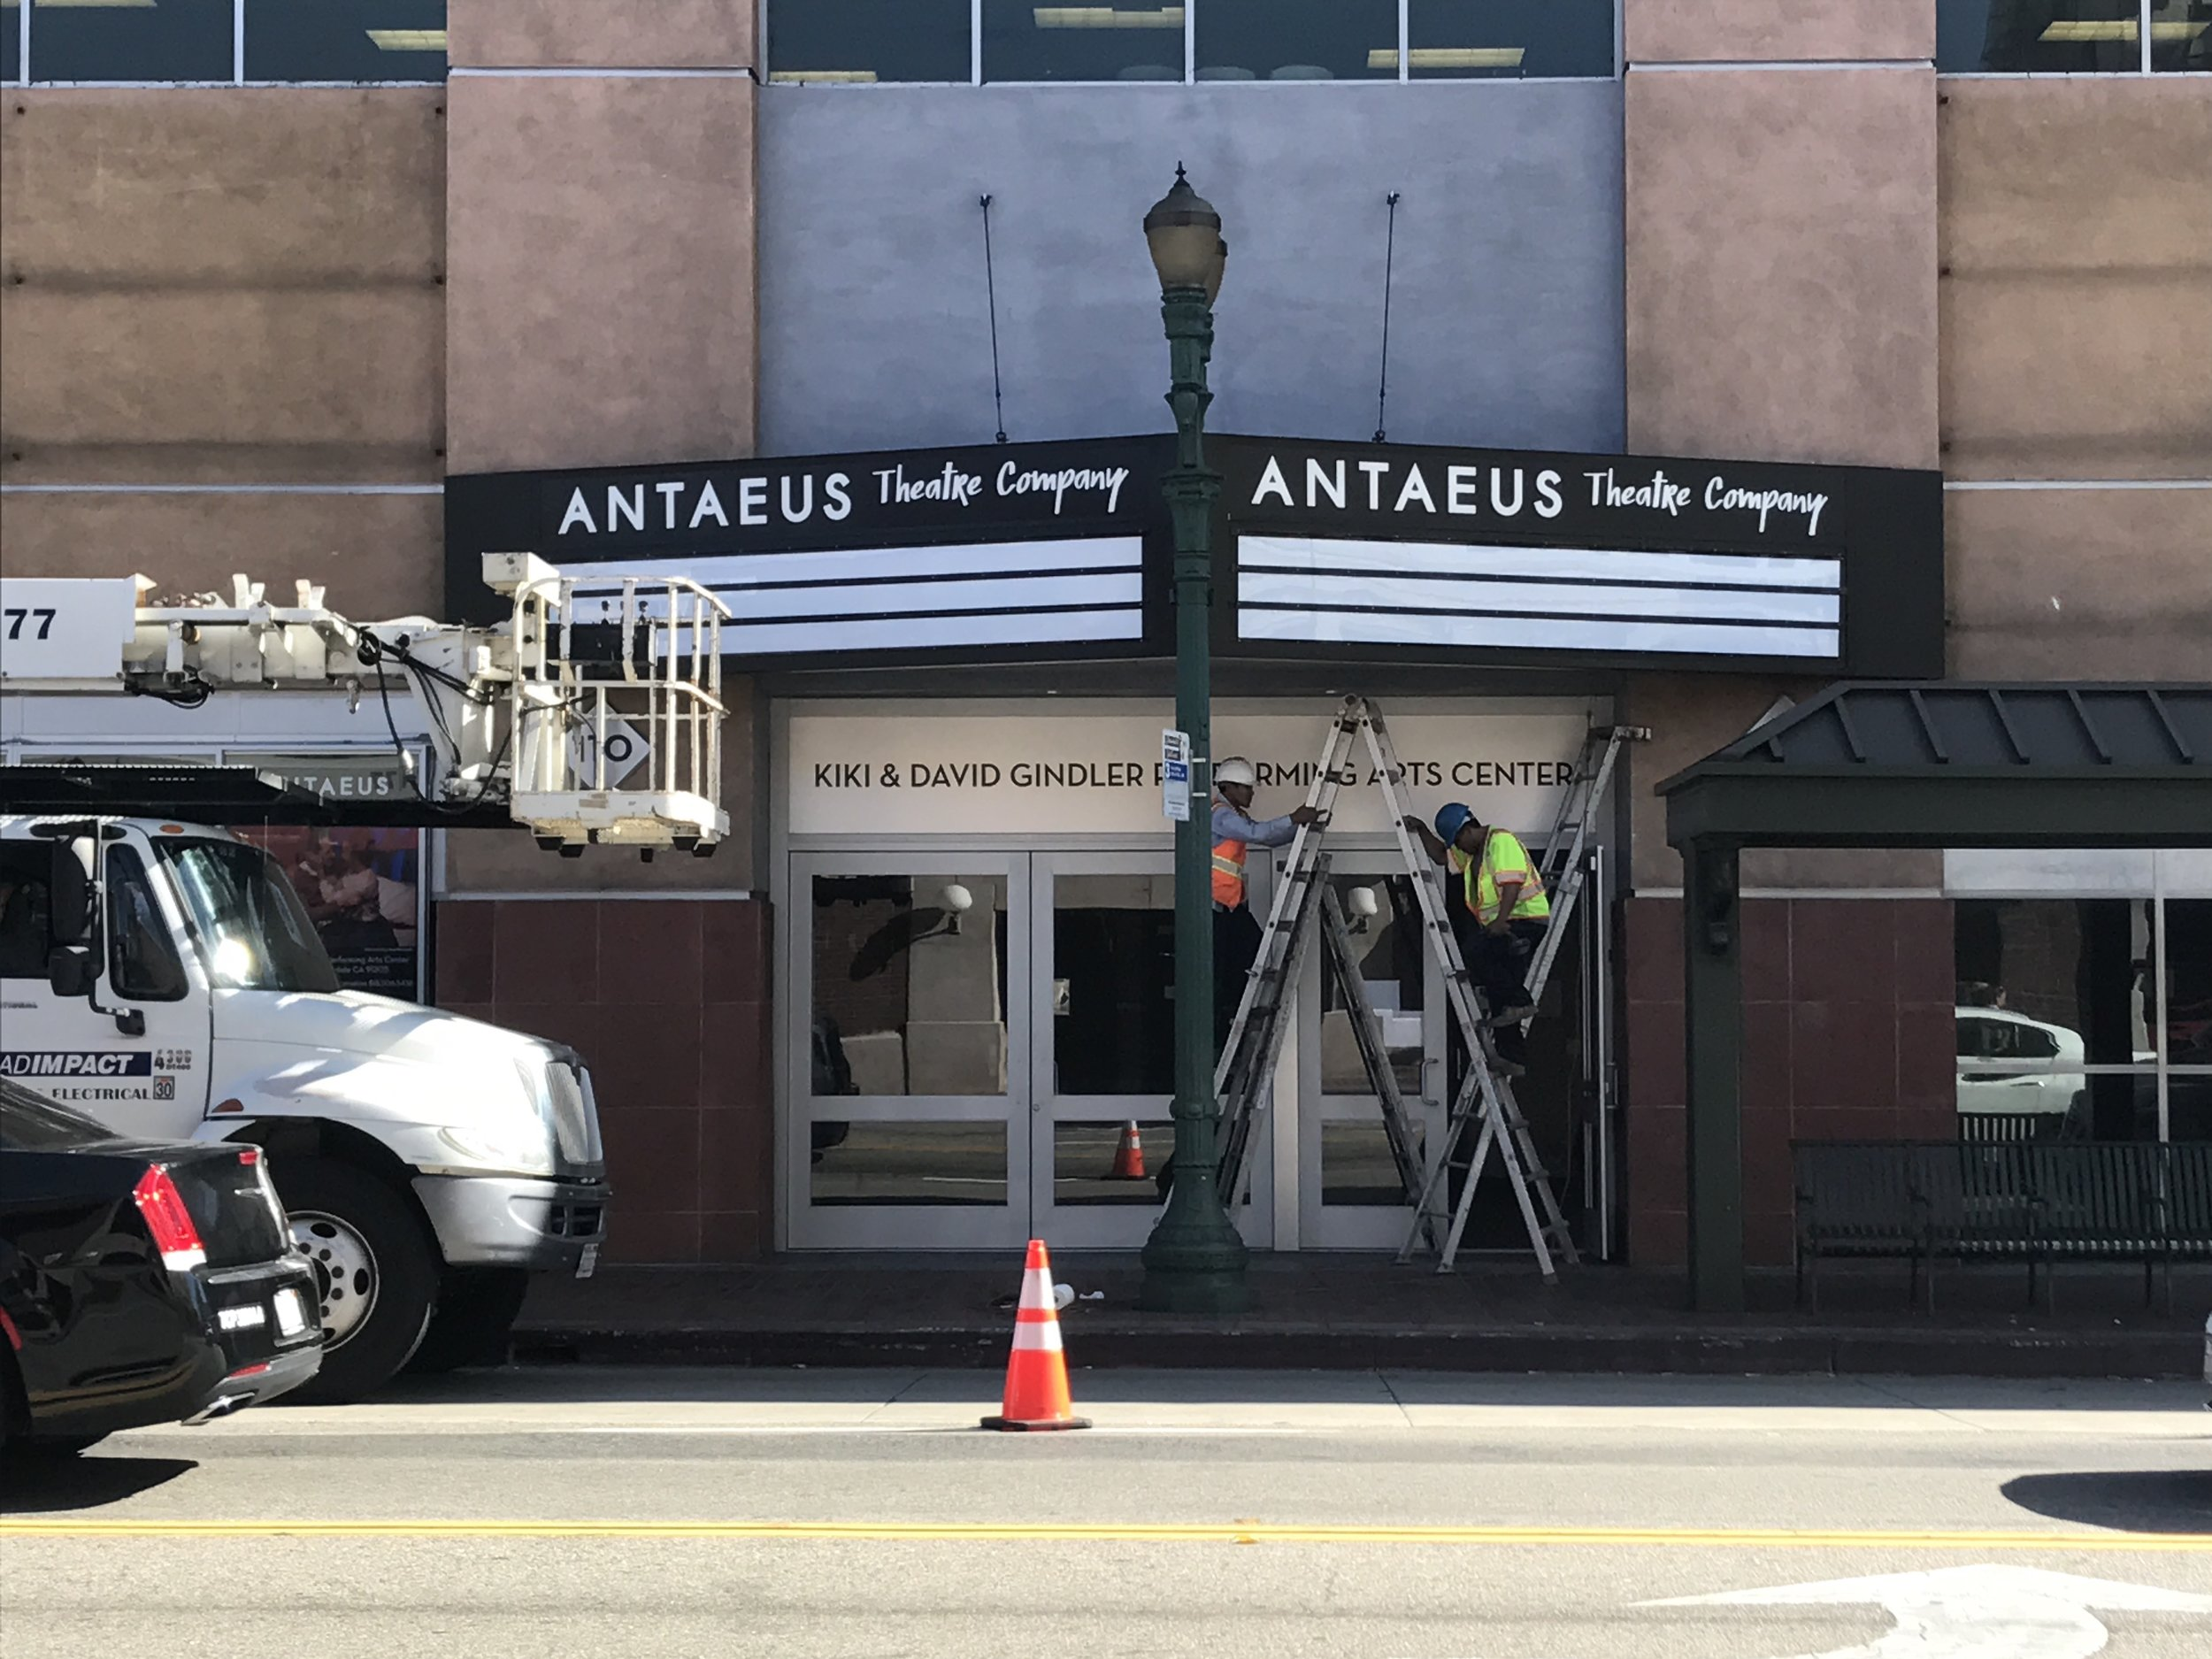 Workers putting the final touches on Antaeus Theatre's marquee. Photo credit: Ana Rose O'Halloran